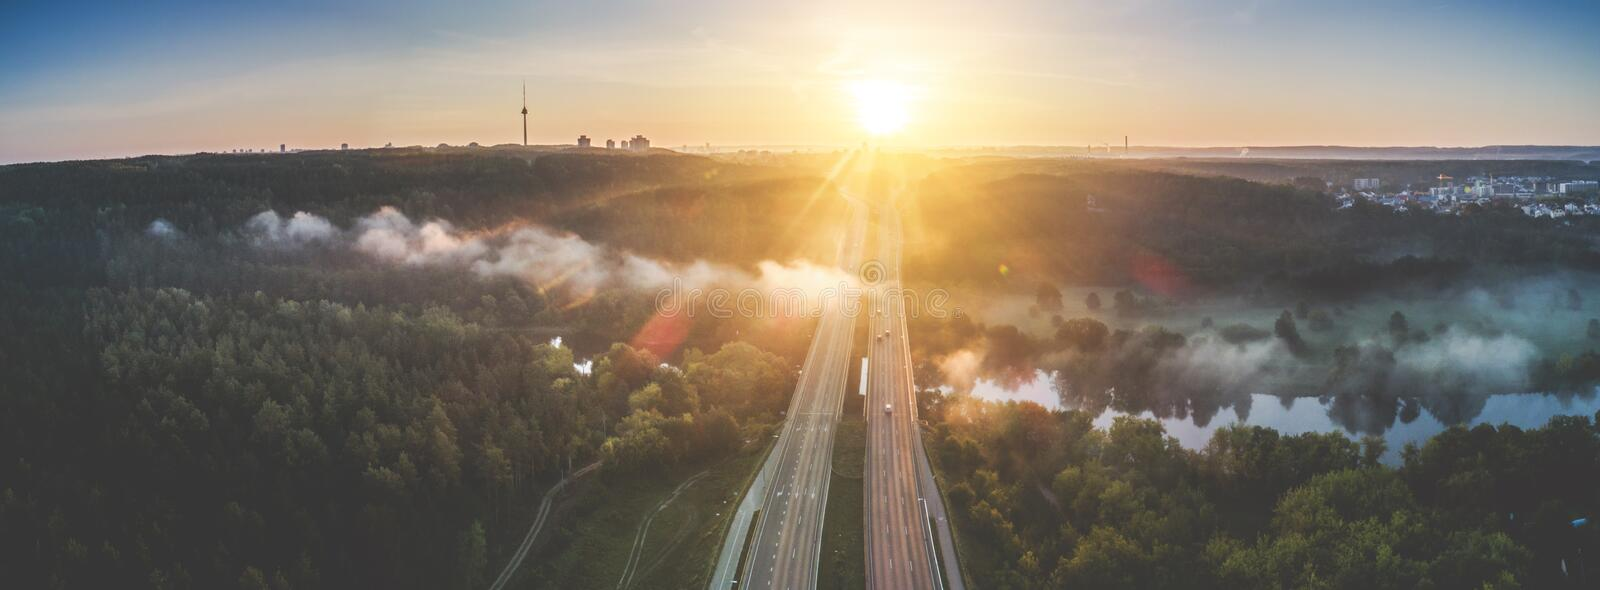 Aerial highway road at sunrise near river royalty free stock photo